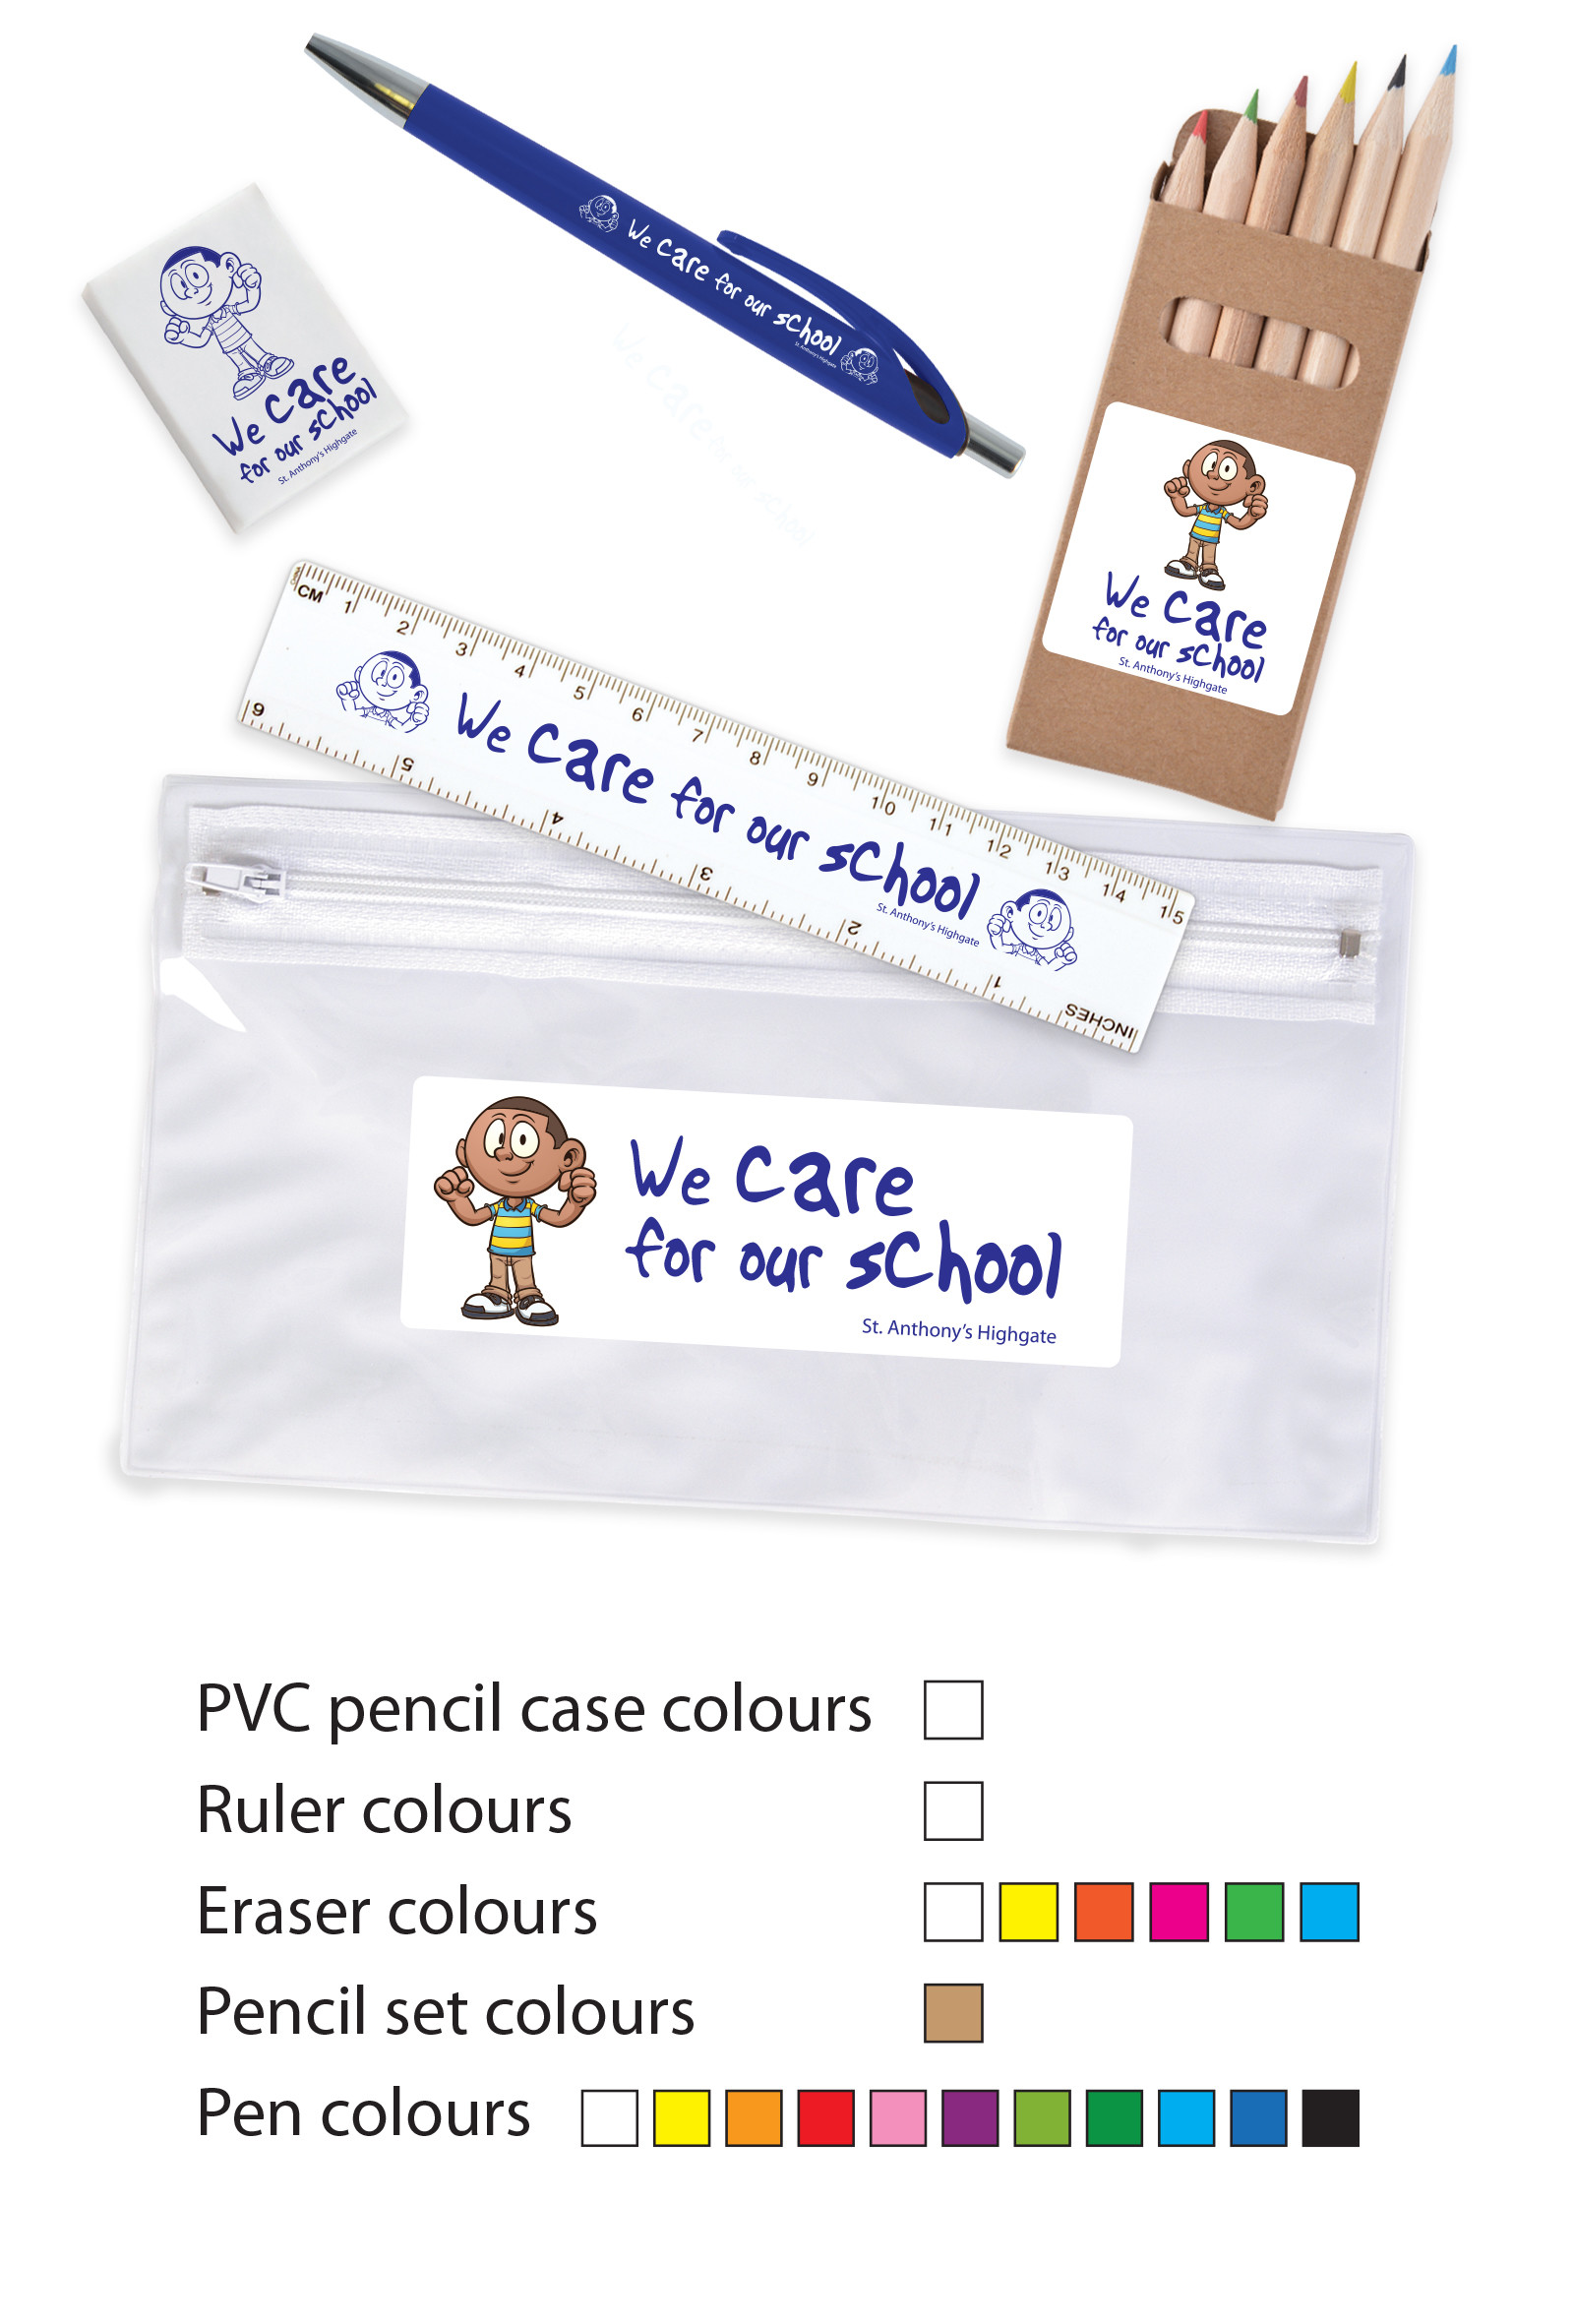 Promotional Product Stationery Set Combo in PVC Pencil Case